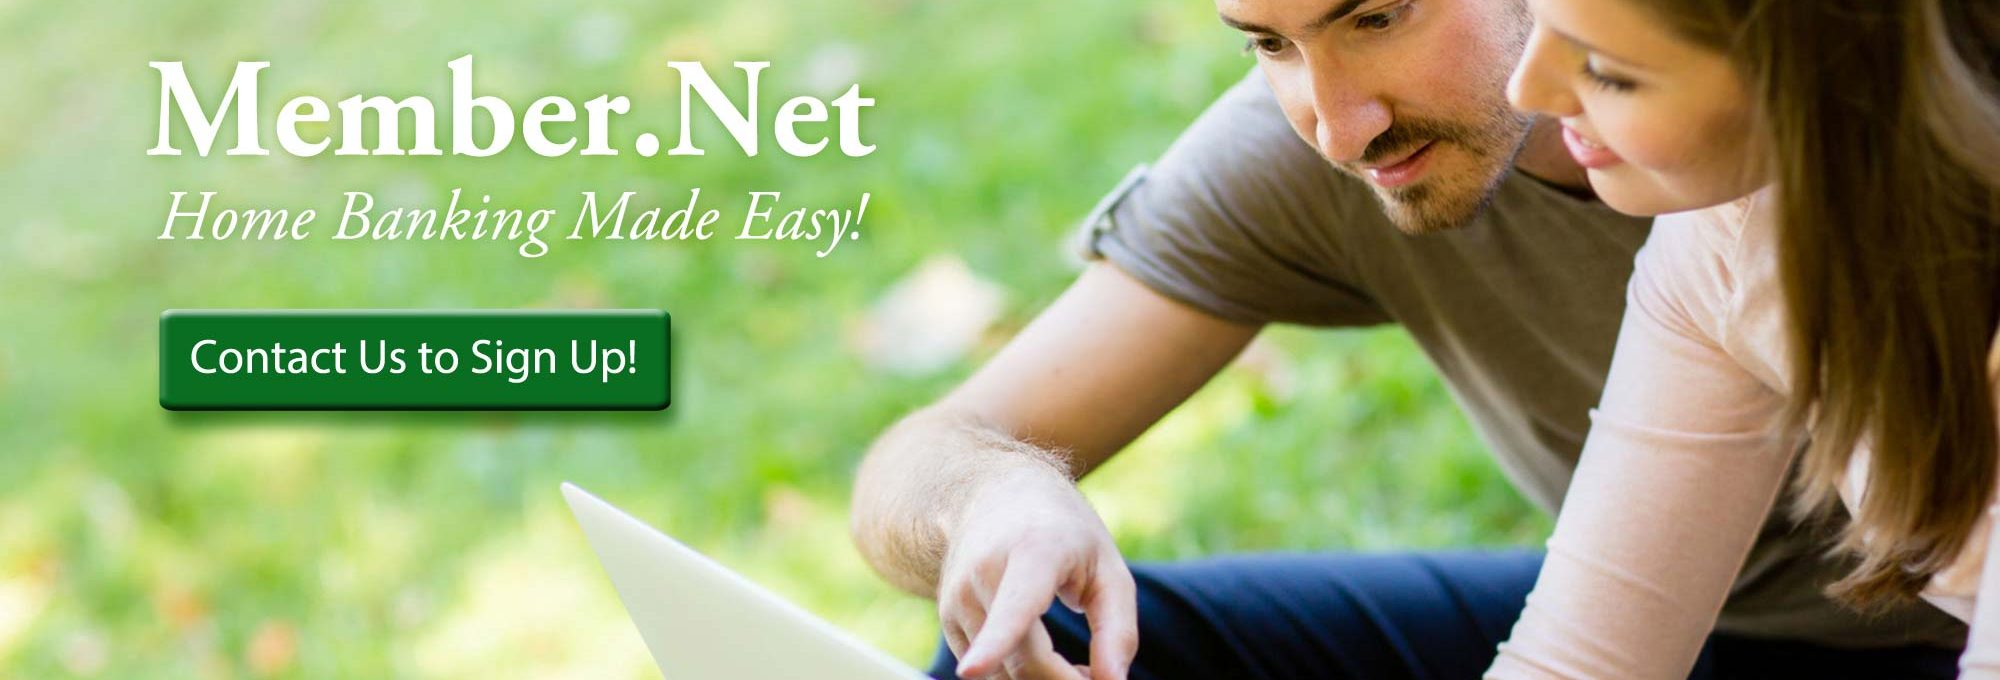 Member.Net-home banking made easy!